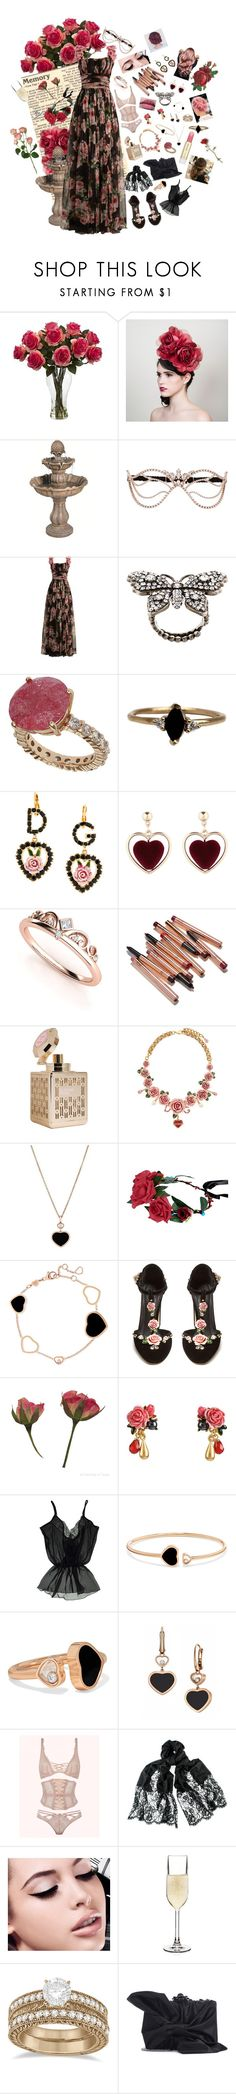 """rosy romance"" by astral-leech ❤ liked on Polyvore featuring Nearly Natural, Agent Provocateur, Dolce&Gabbana, Gucci, Topshop, LUMO, Chopard, Les Néréides, Roser and Myla"